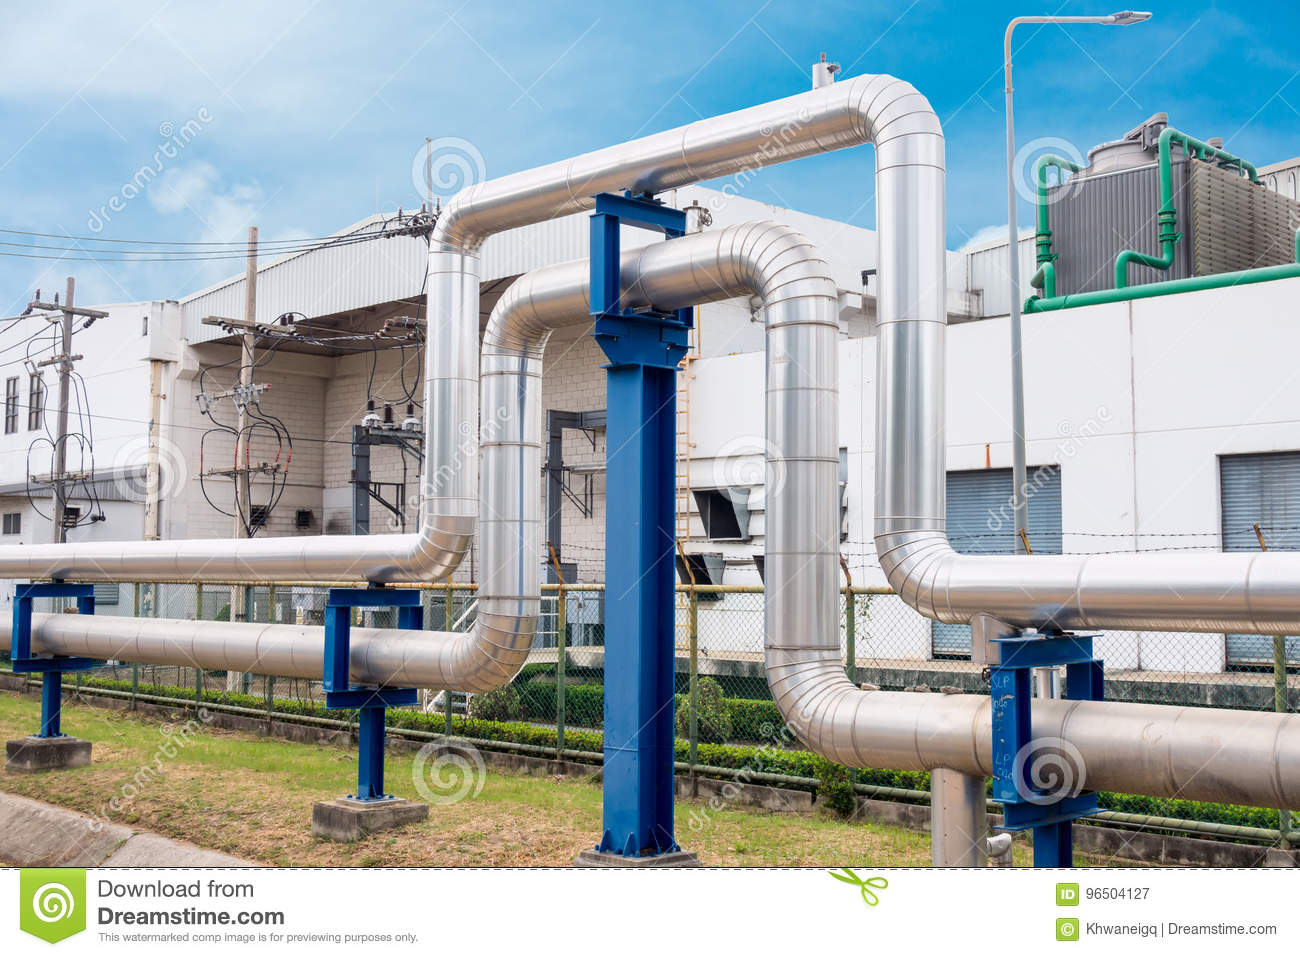 Steam insulation and loop pipeline, Steam pipe.supply